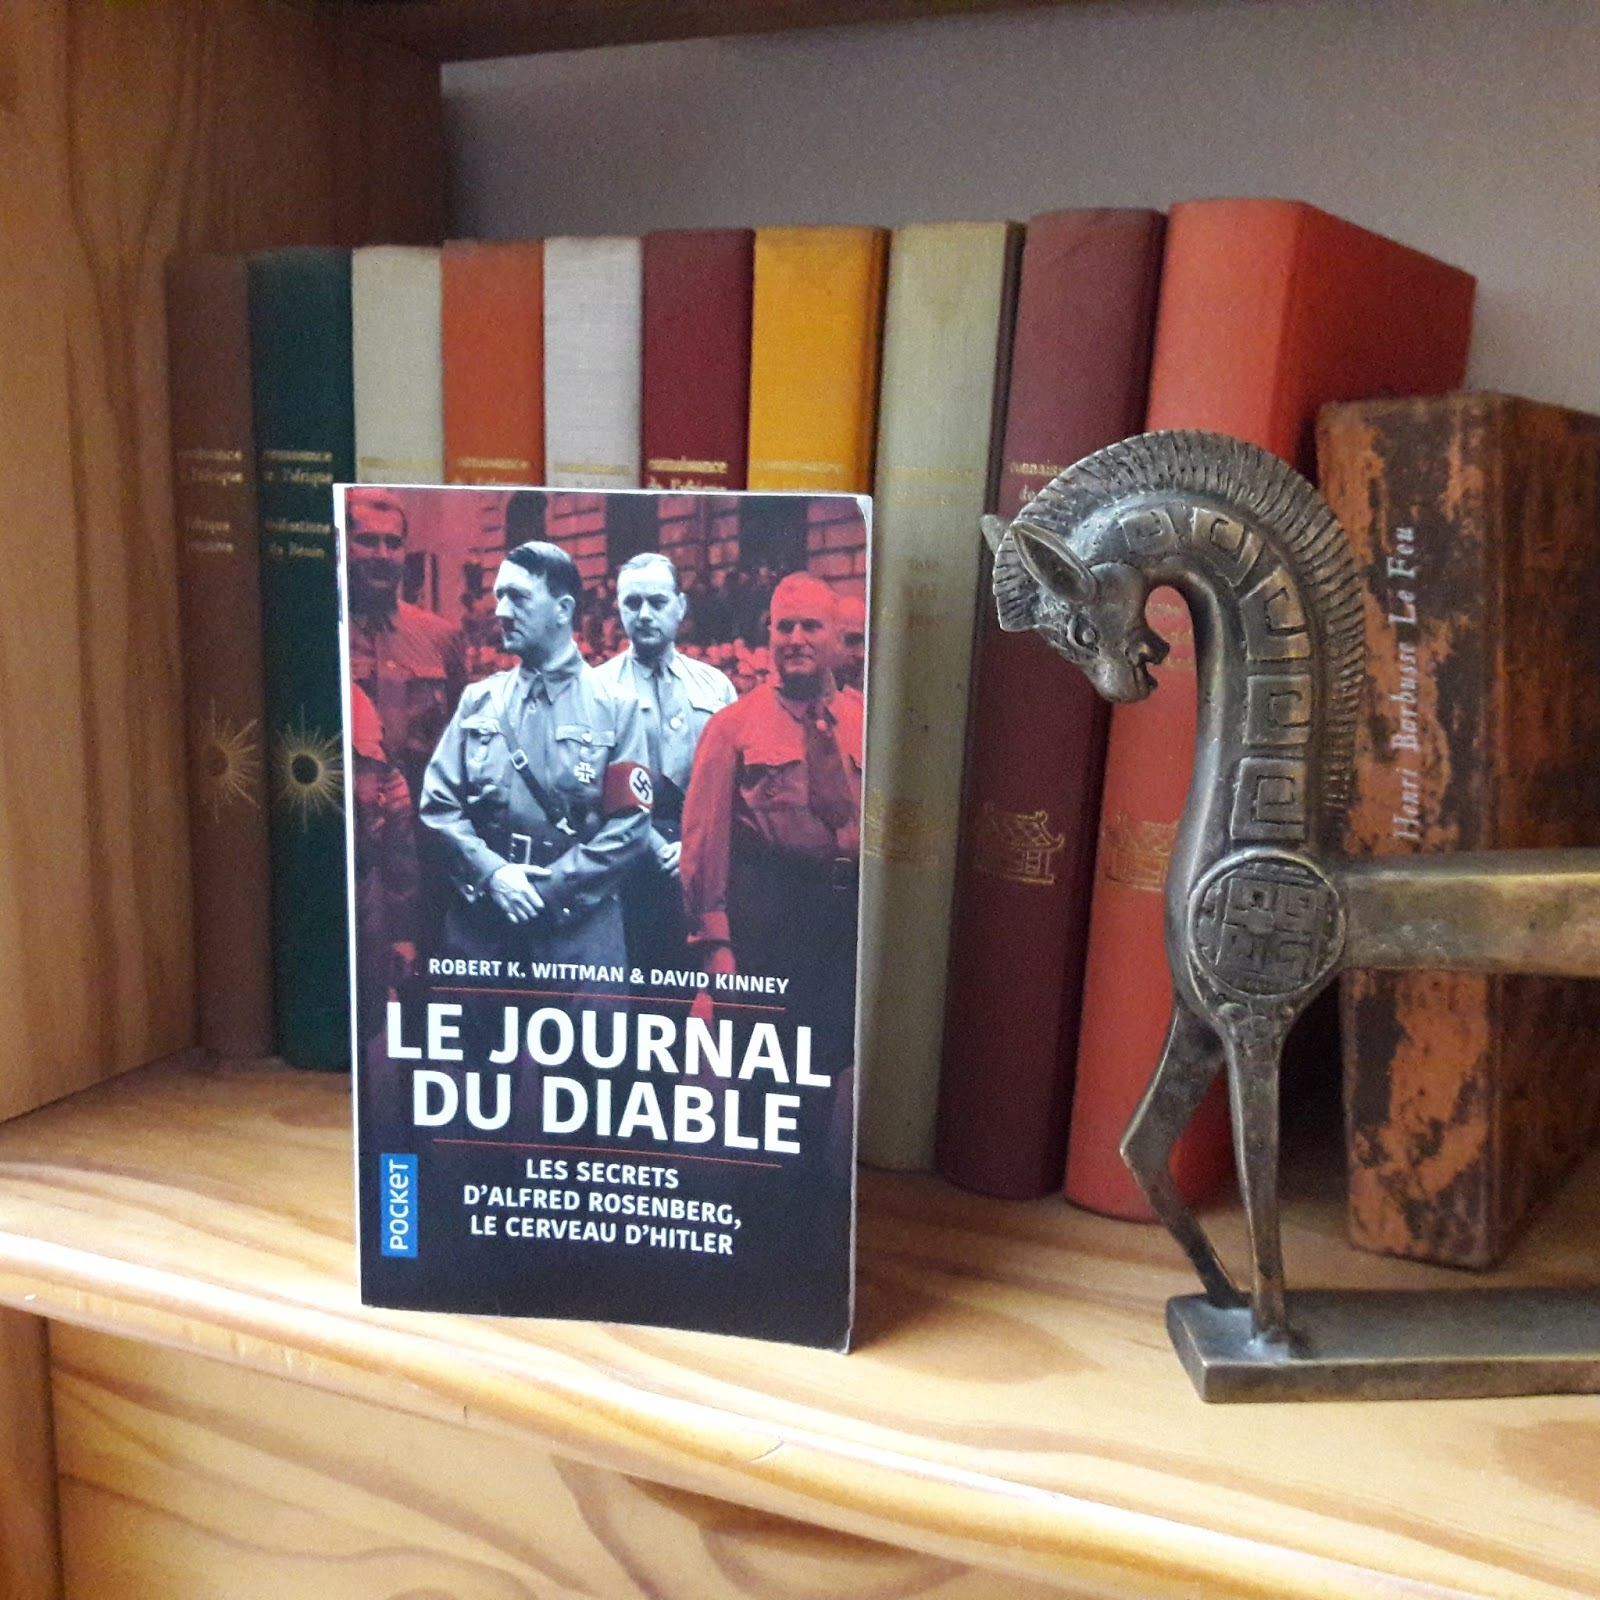 Le journal du diable de Robert K. Wittman et David Kinney